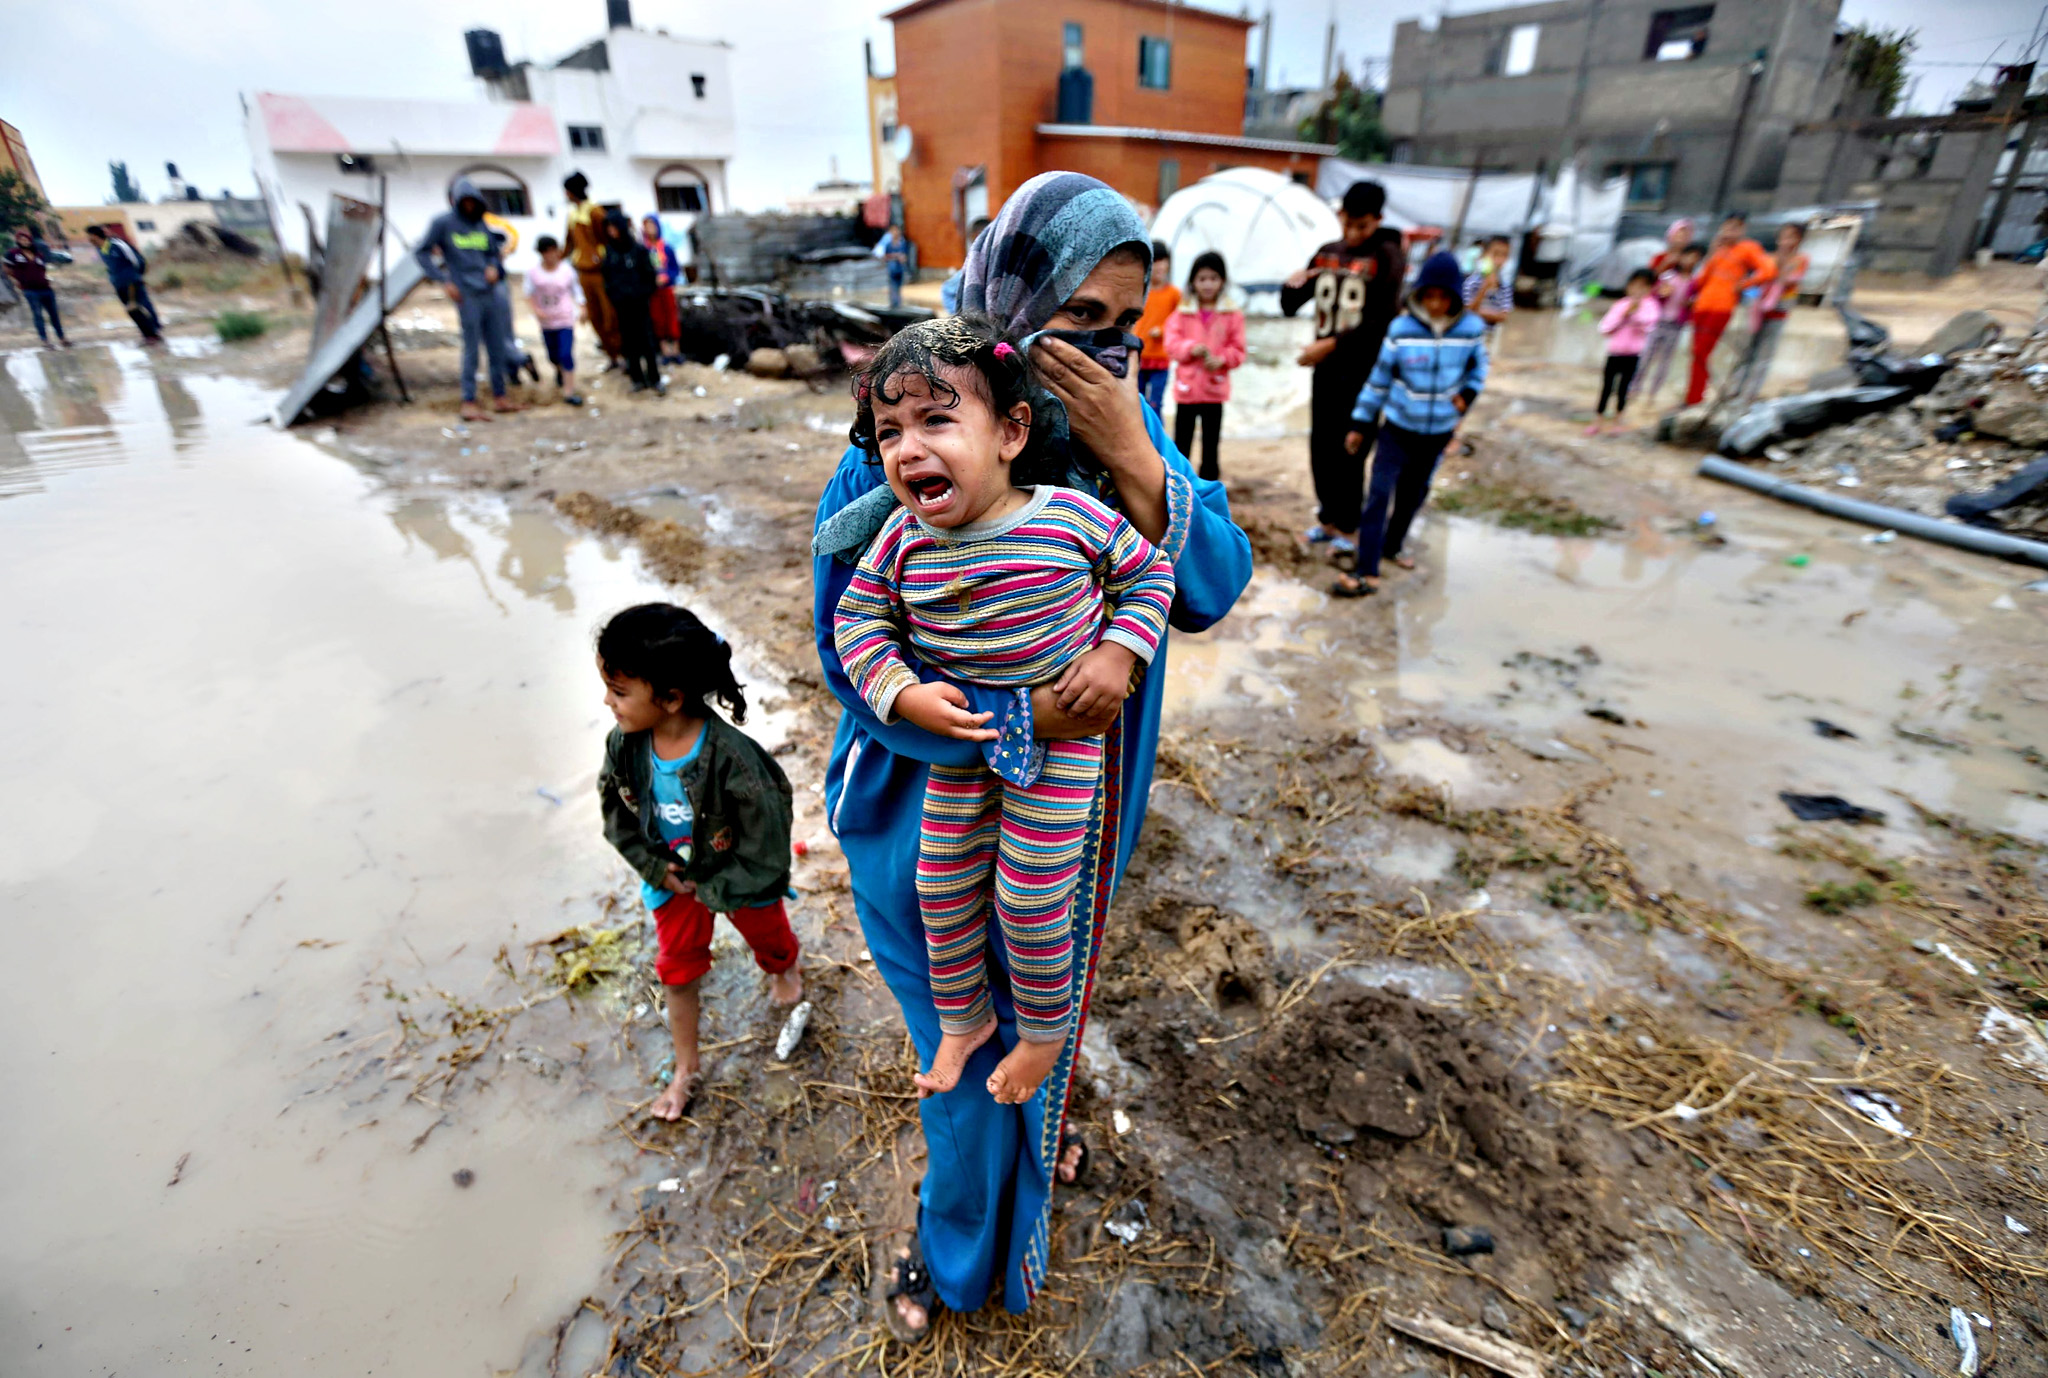 A Palestinian woman carries her crying daughter after rainwater flooded their house that witnesses said was damaged by Israeli shelling during the 50-day war in the summer of 2014,  in Khan Younis in the southern Gaza Strip October 7, 2015.